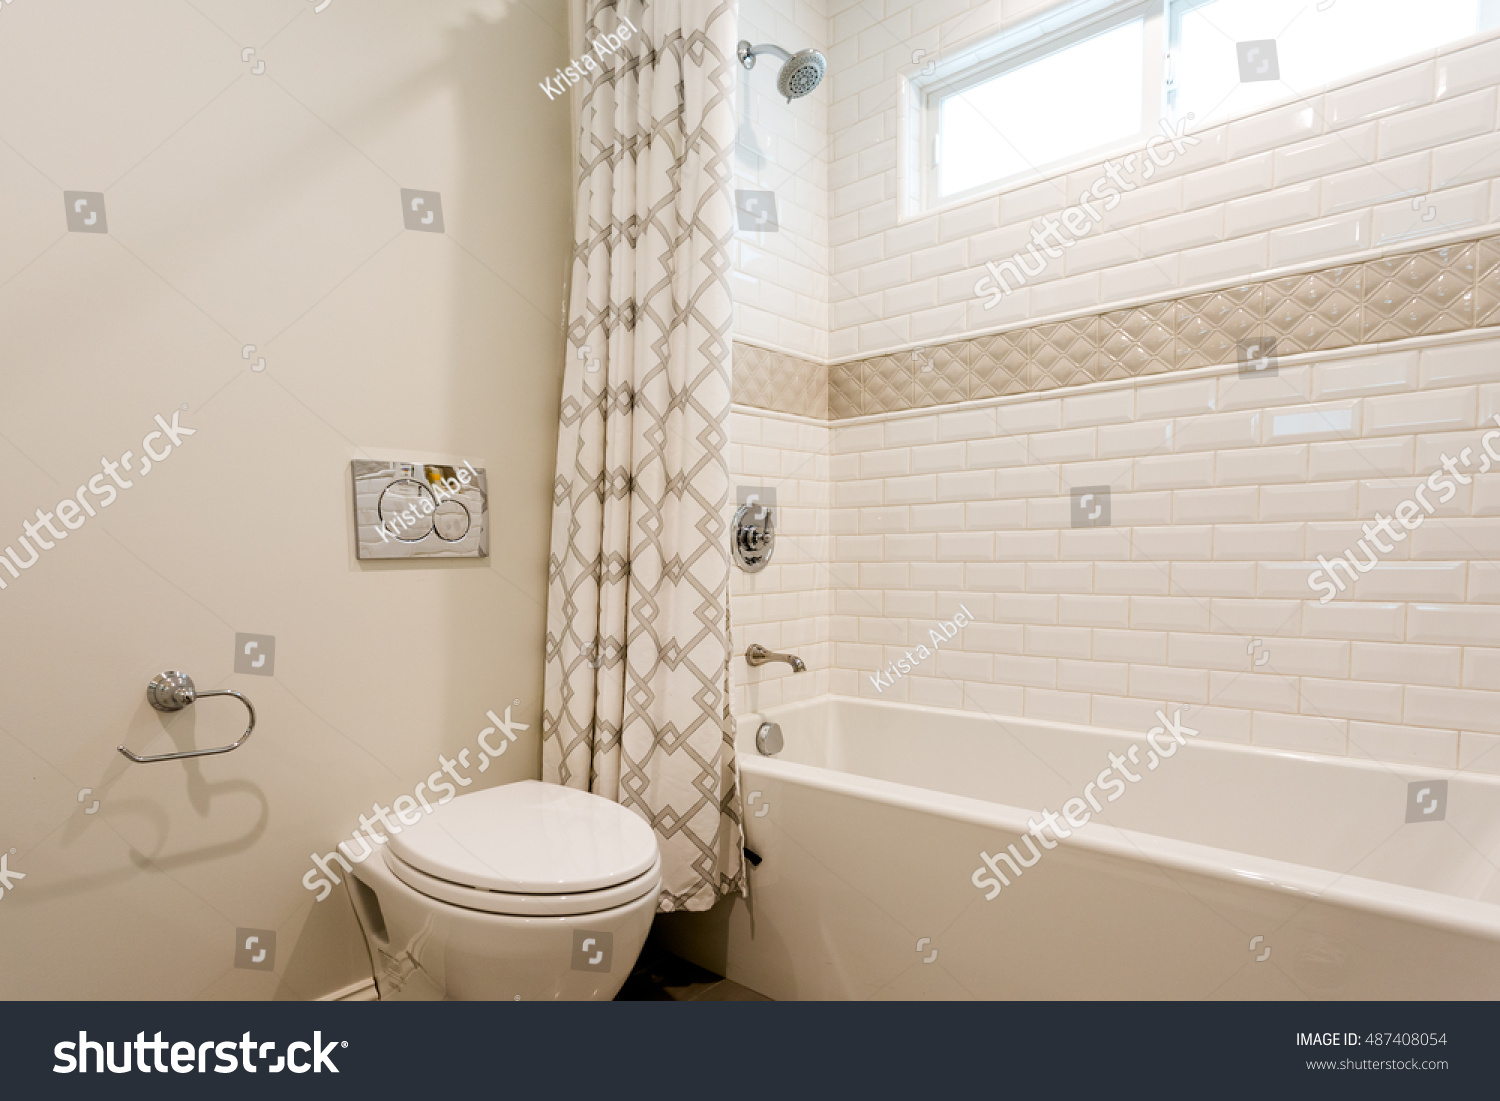 Clean Bathroom Tiles Stock Photo (Edit Now) 487408054 - Shutterstock